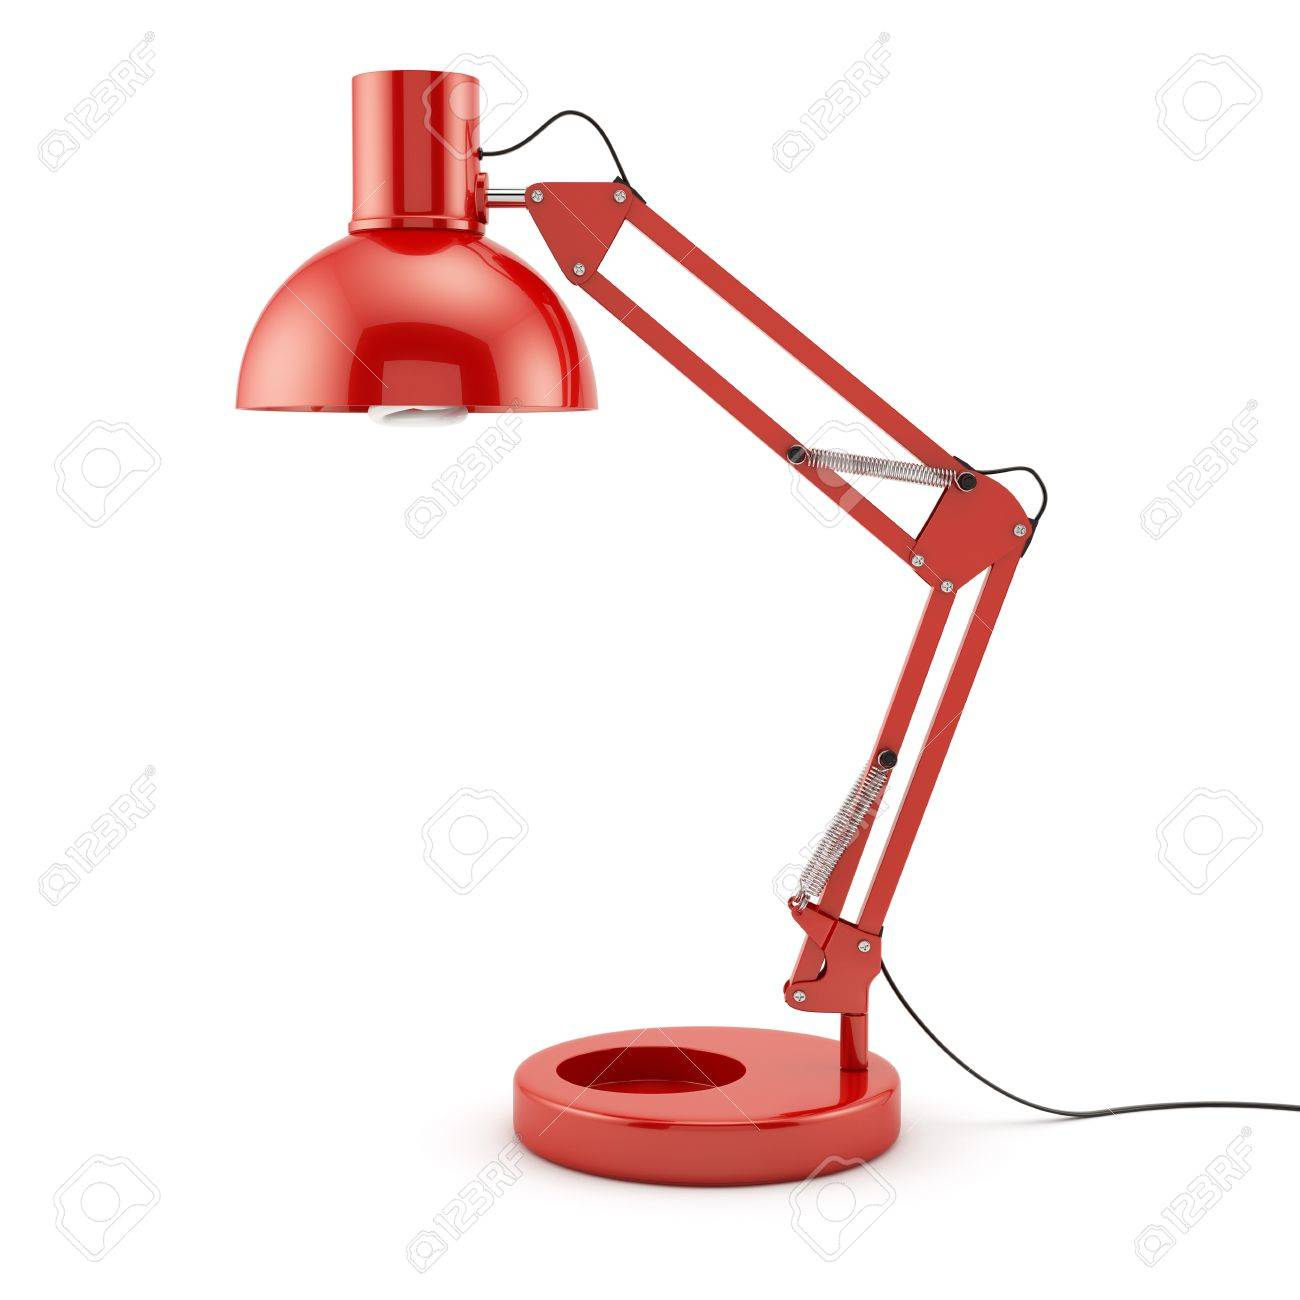 3d of red table lamp isolated on white background stock - Red Lamp